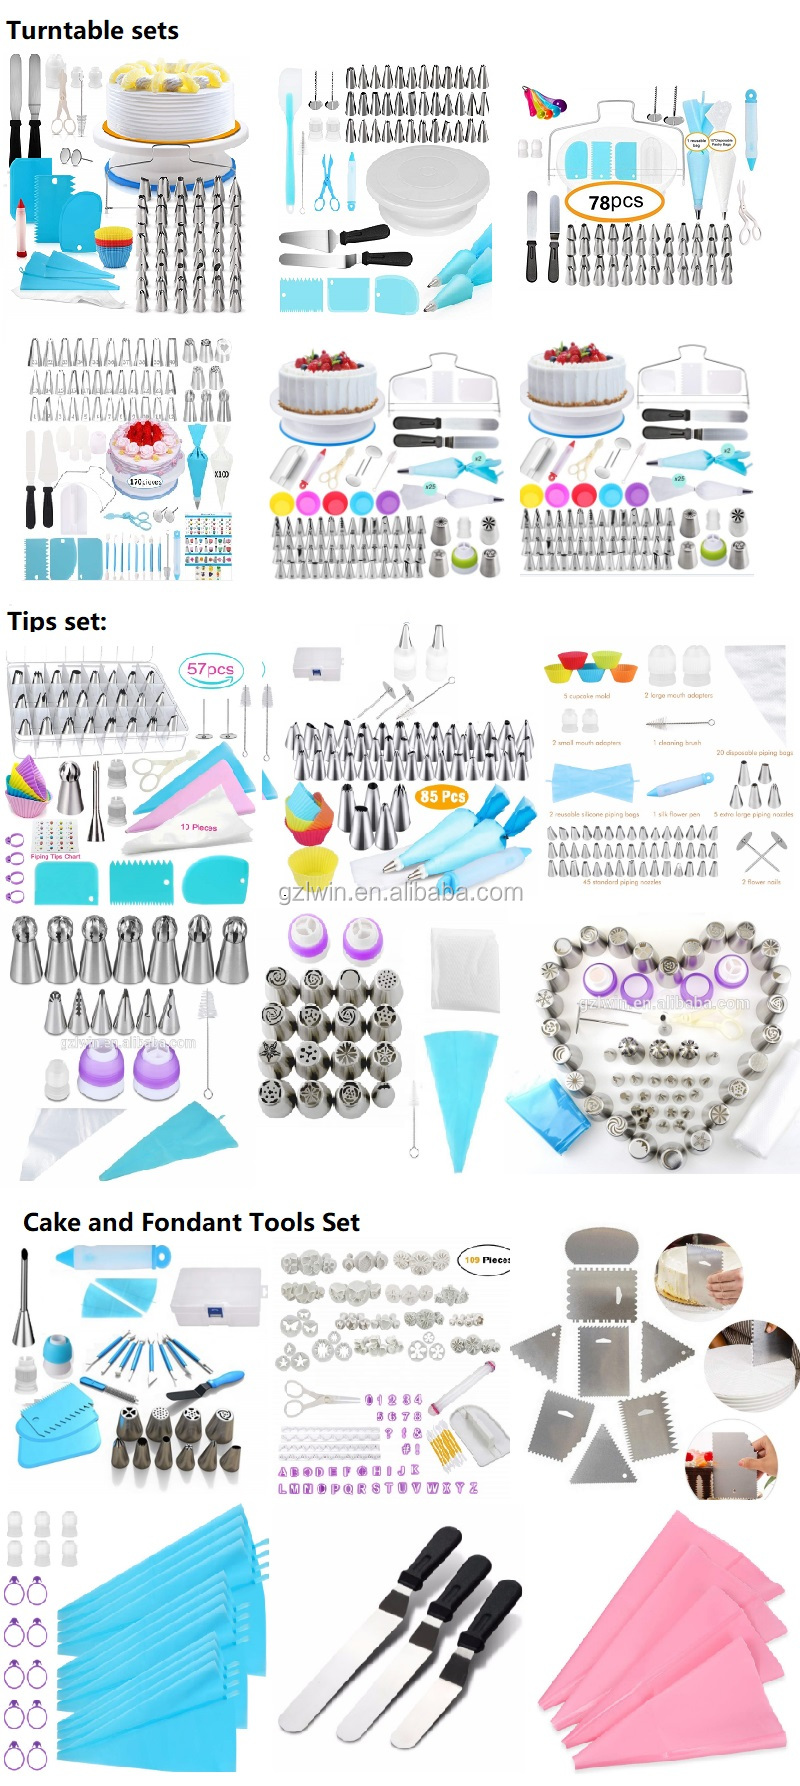 hot sales cake decorating supplies kit / cake decorating turntable / cake turntable set